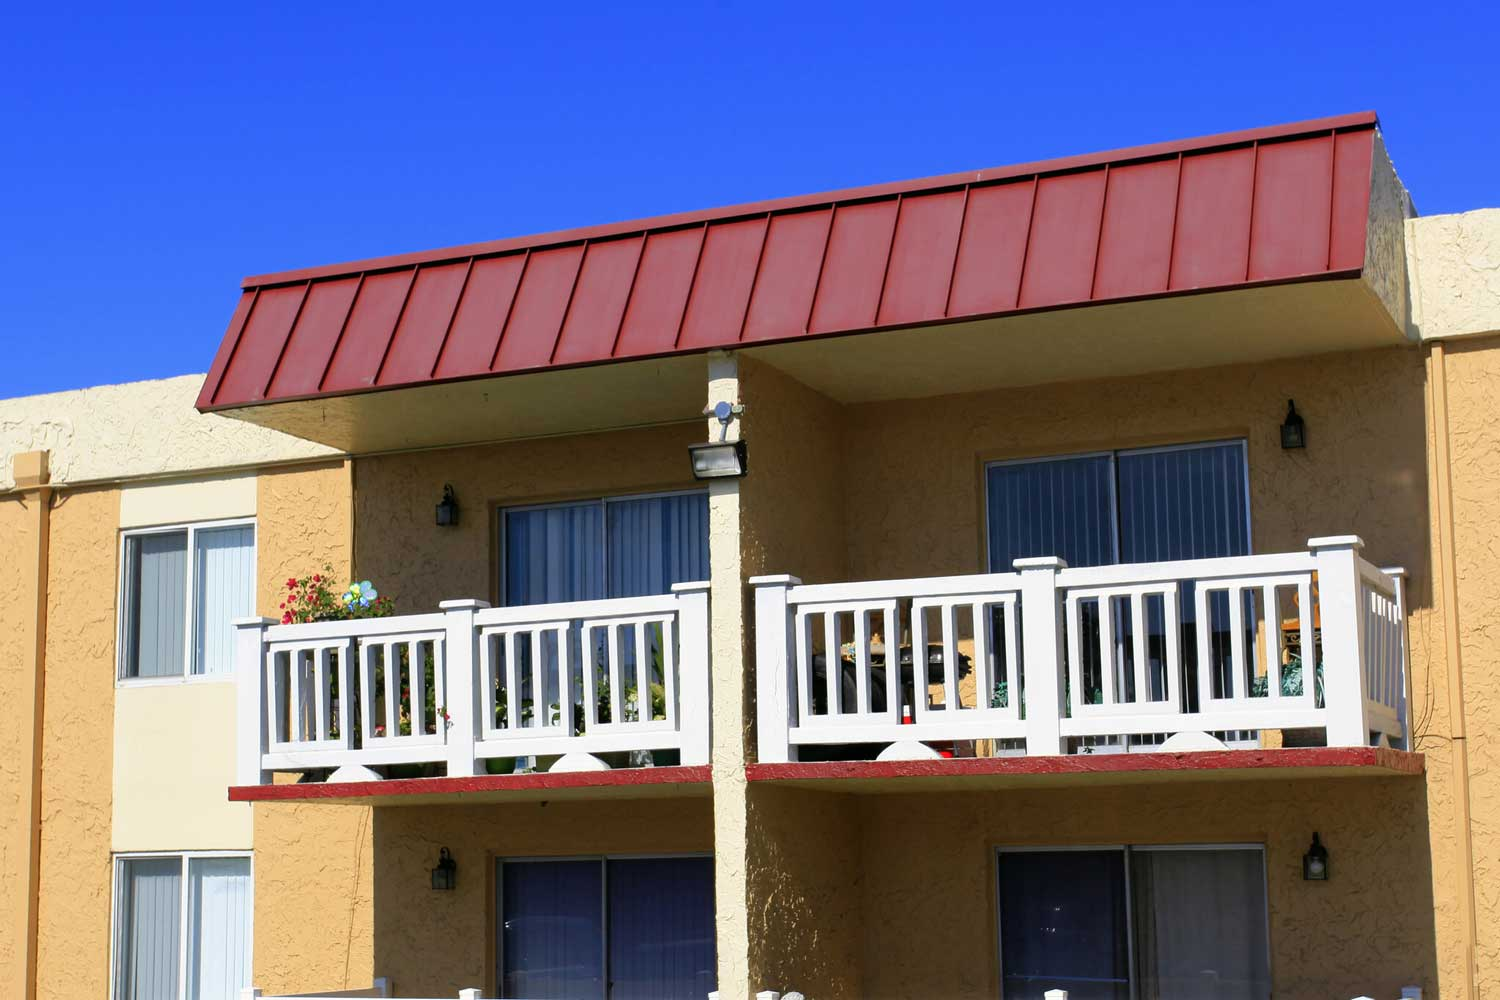 Private Balcony at Windsor Forest Apartments in Pompano Beach, FL